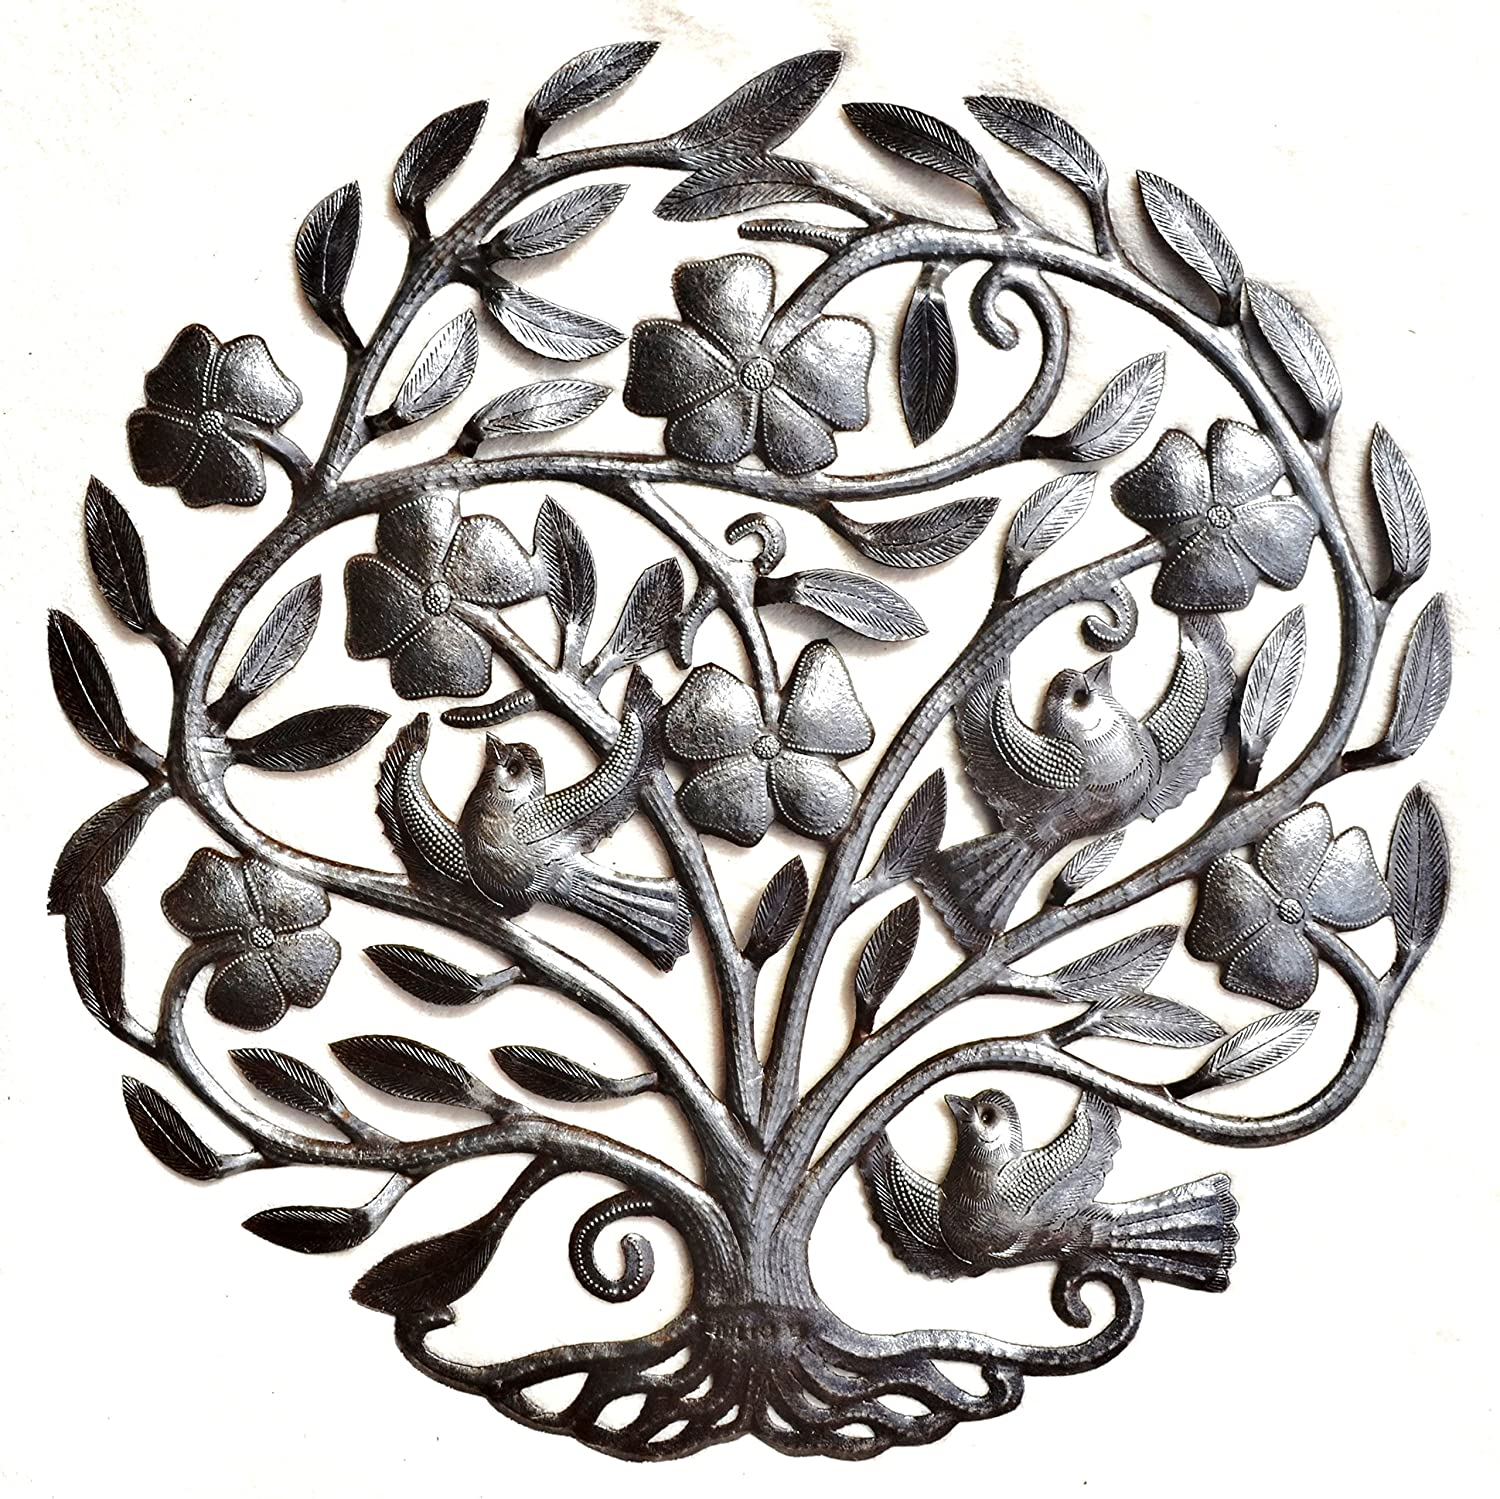 """Tree of life with Flowers, Nature Inspired Metal Wall Art, Hang indoor or outdoors 22.5"""" X 23"""""""